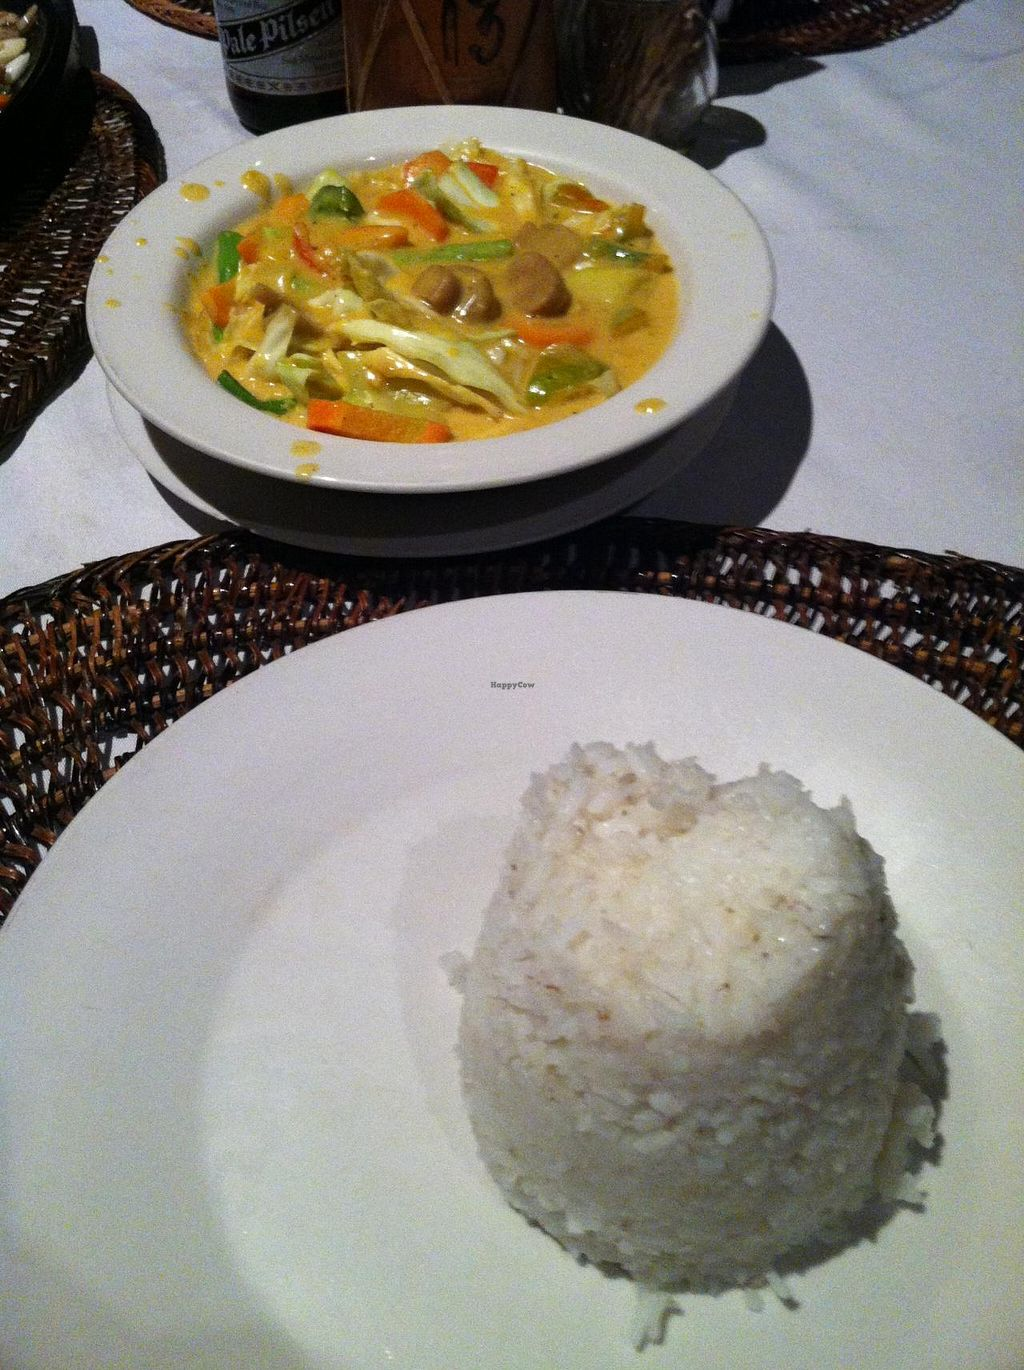 "Photo of Seadive Restaurant  by <a href=""/members/profile/Inoshishi"">Inoshishi</a> <br/>Vegetable curry <br/> January 13, 2014  - <a href='/contact/abuse/image/44450/62450'>Report</a>"